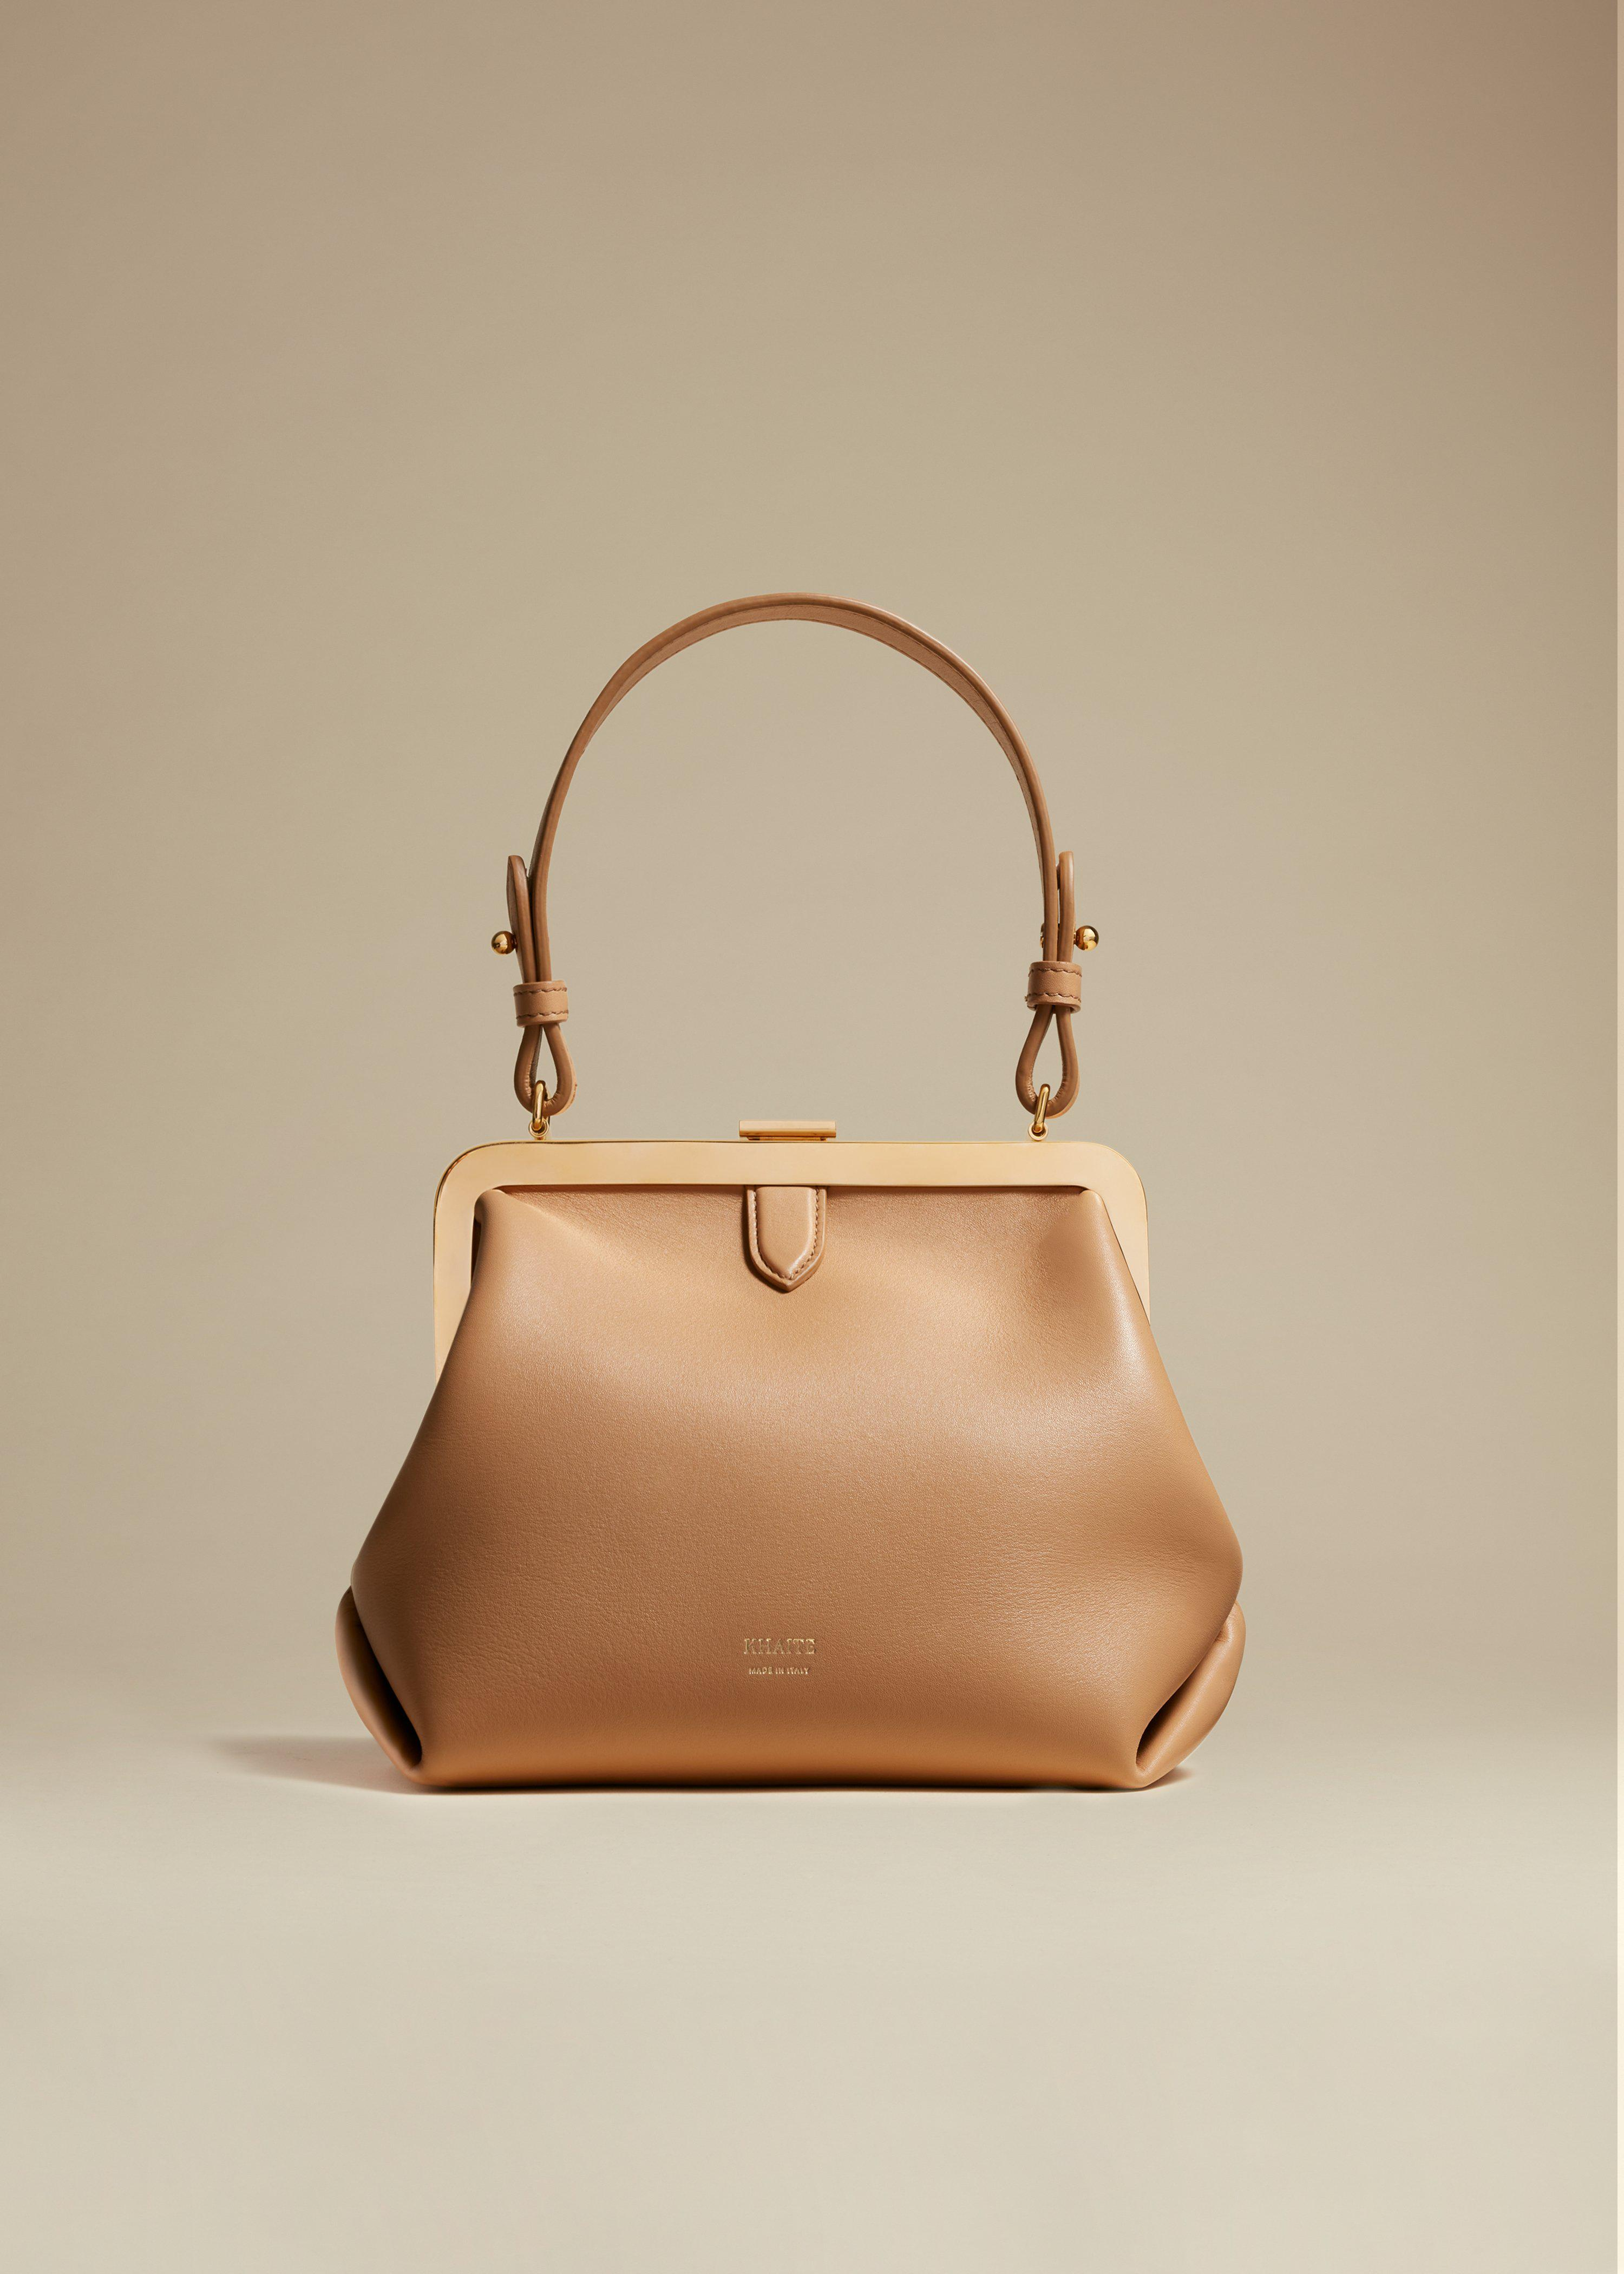 The Small Agnes Bag in Tan Leather